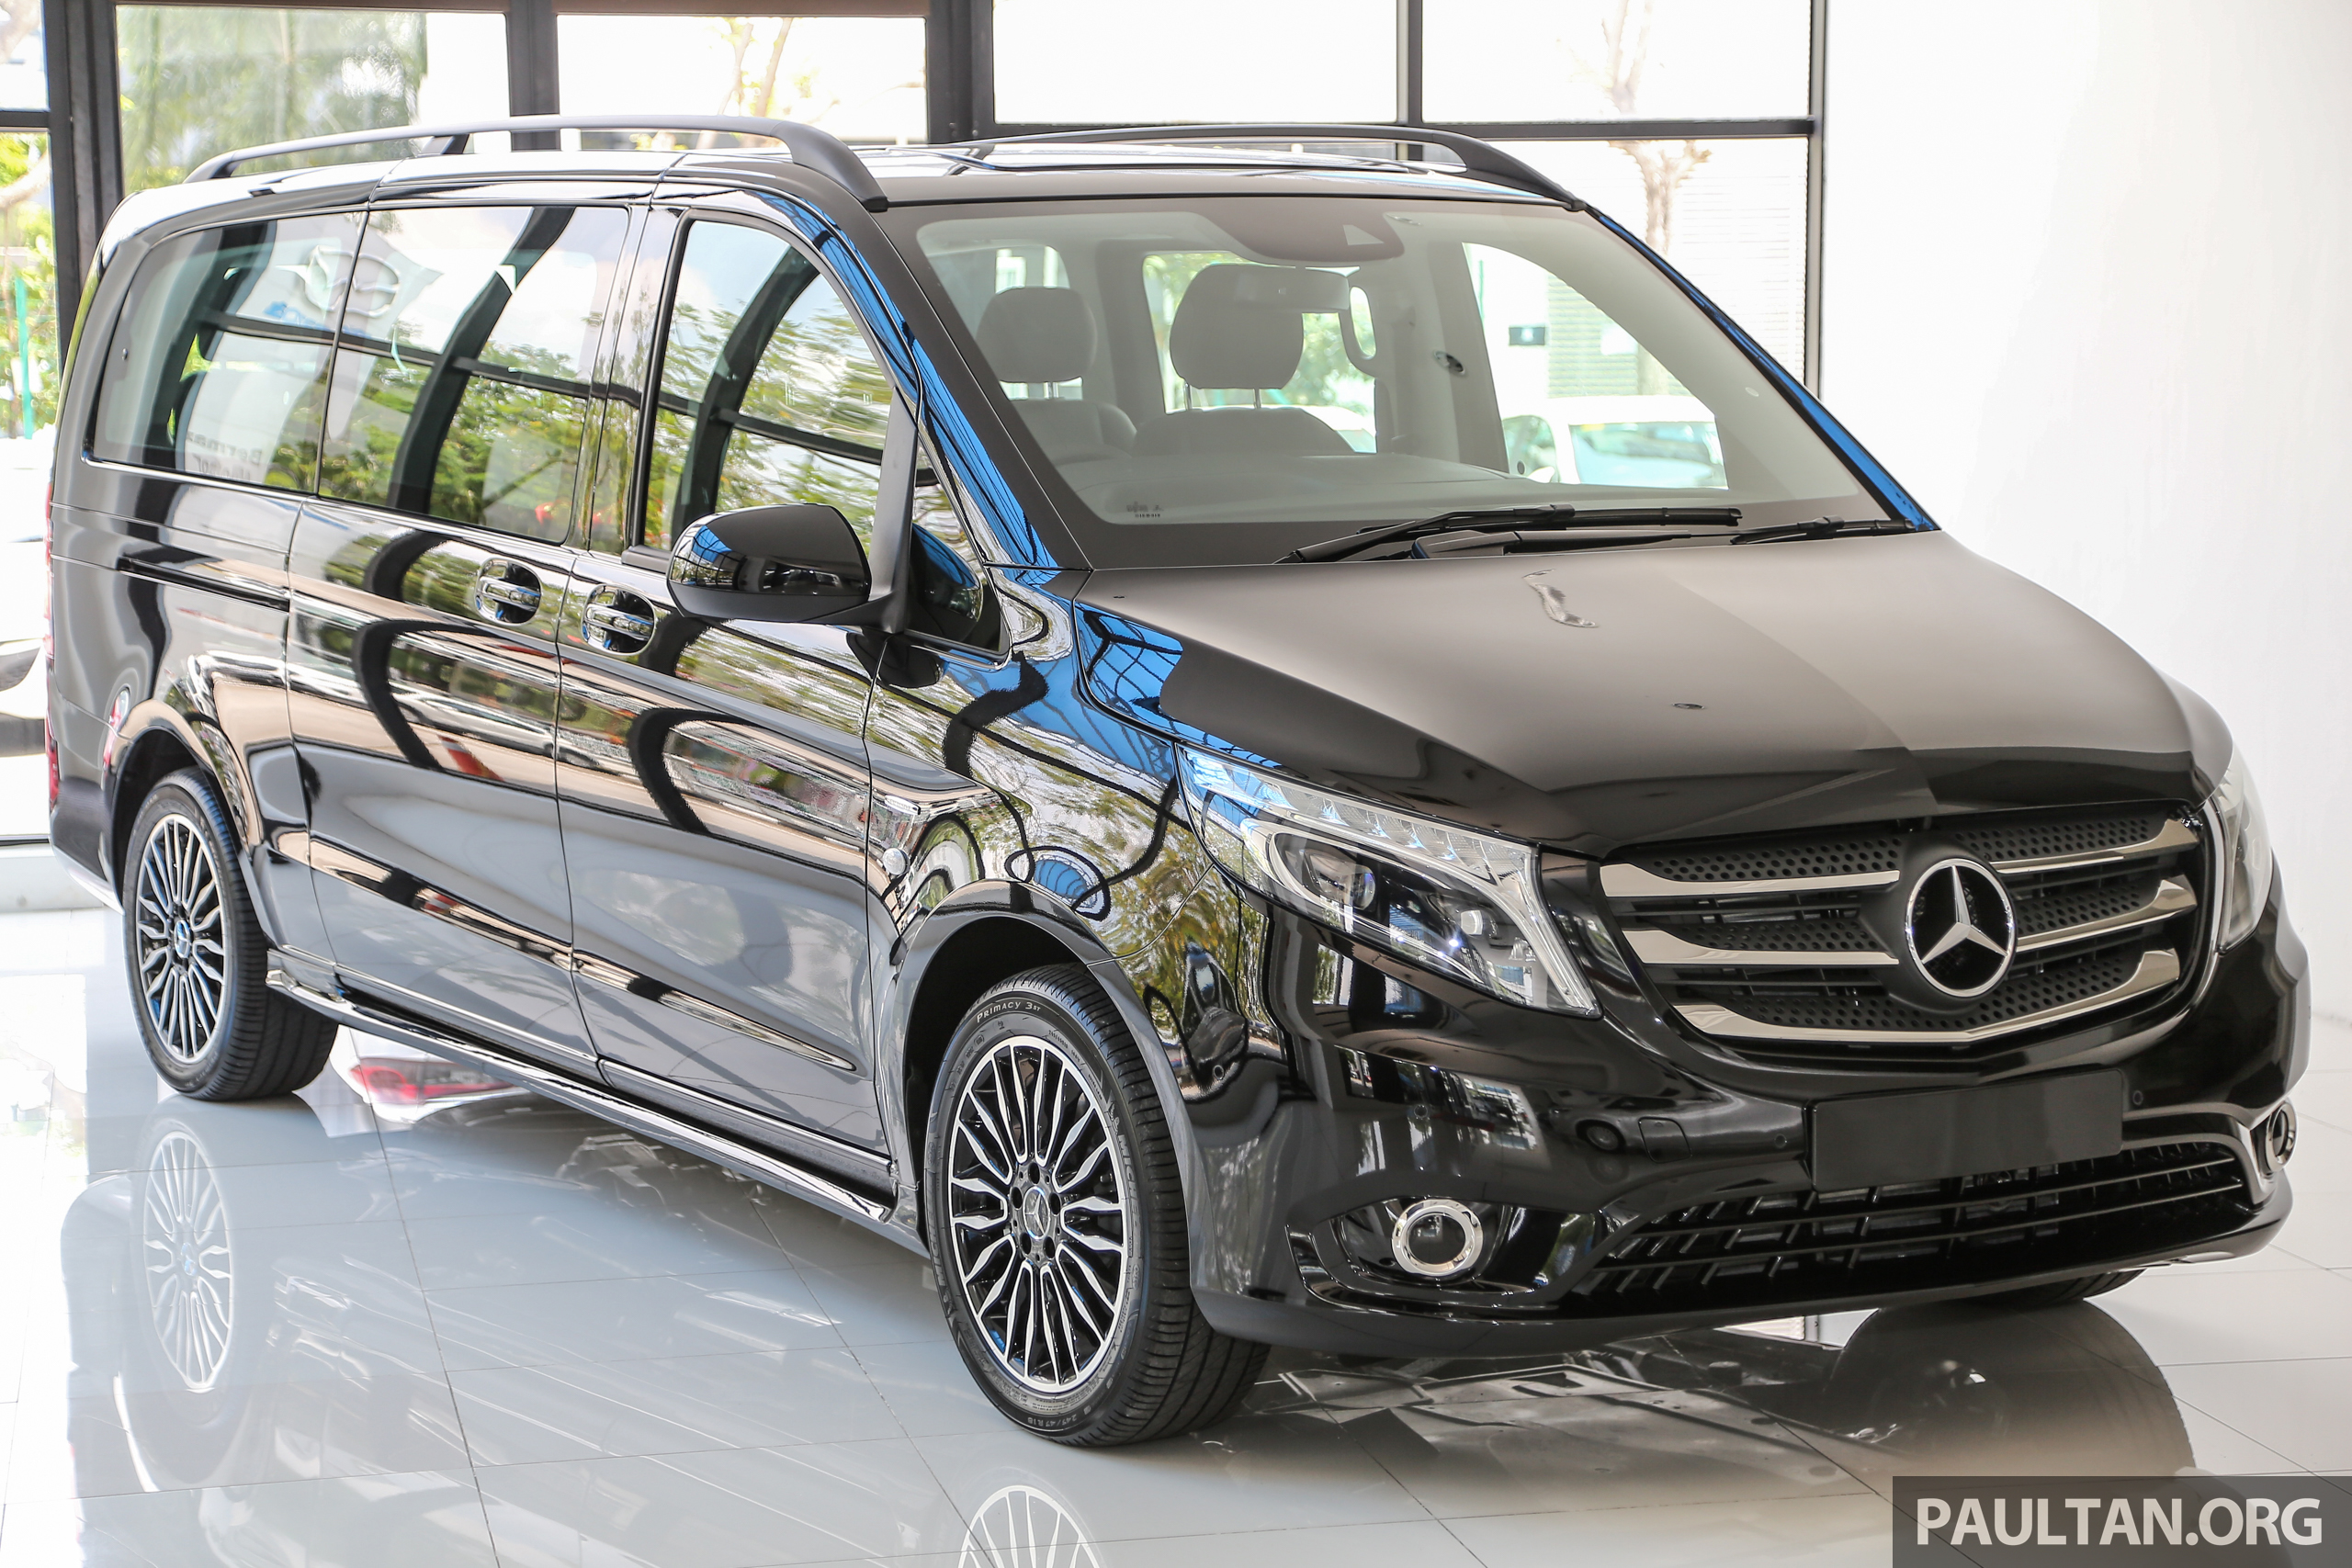 mercedes benz vito tourer now in malaysia rm287k paul tan image 515562. Black Bedroom Furniture Sets. Home Design Ideas